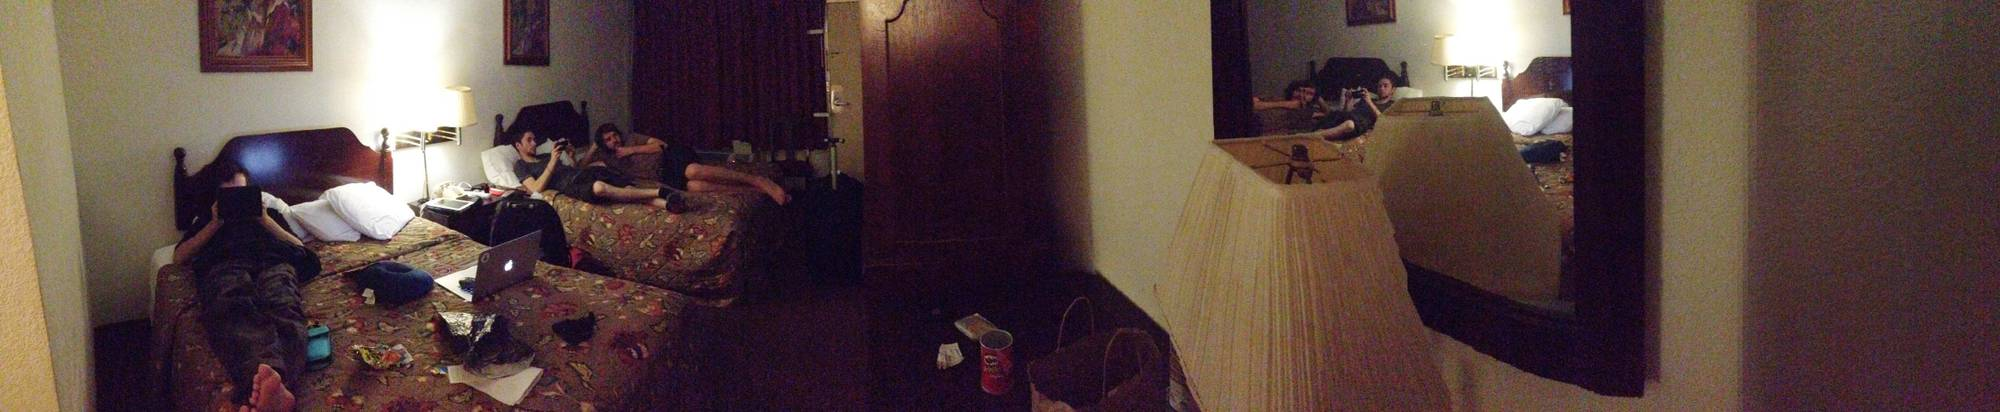 Panorama inside the dank hotel room